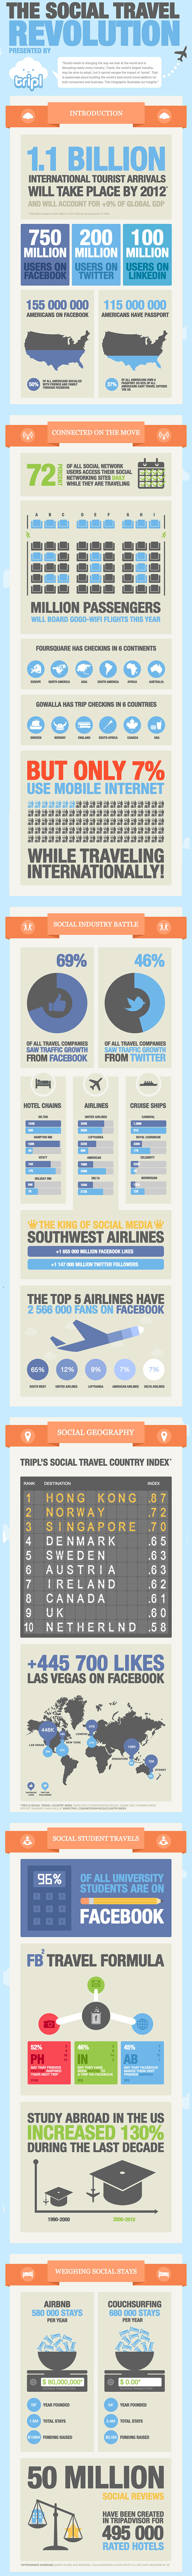 Infographic: The Social Travel Revolution